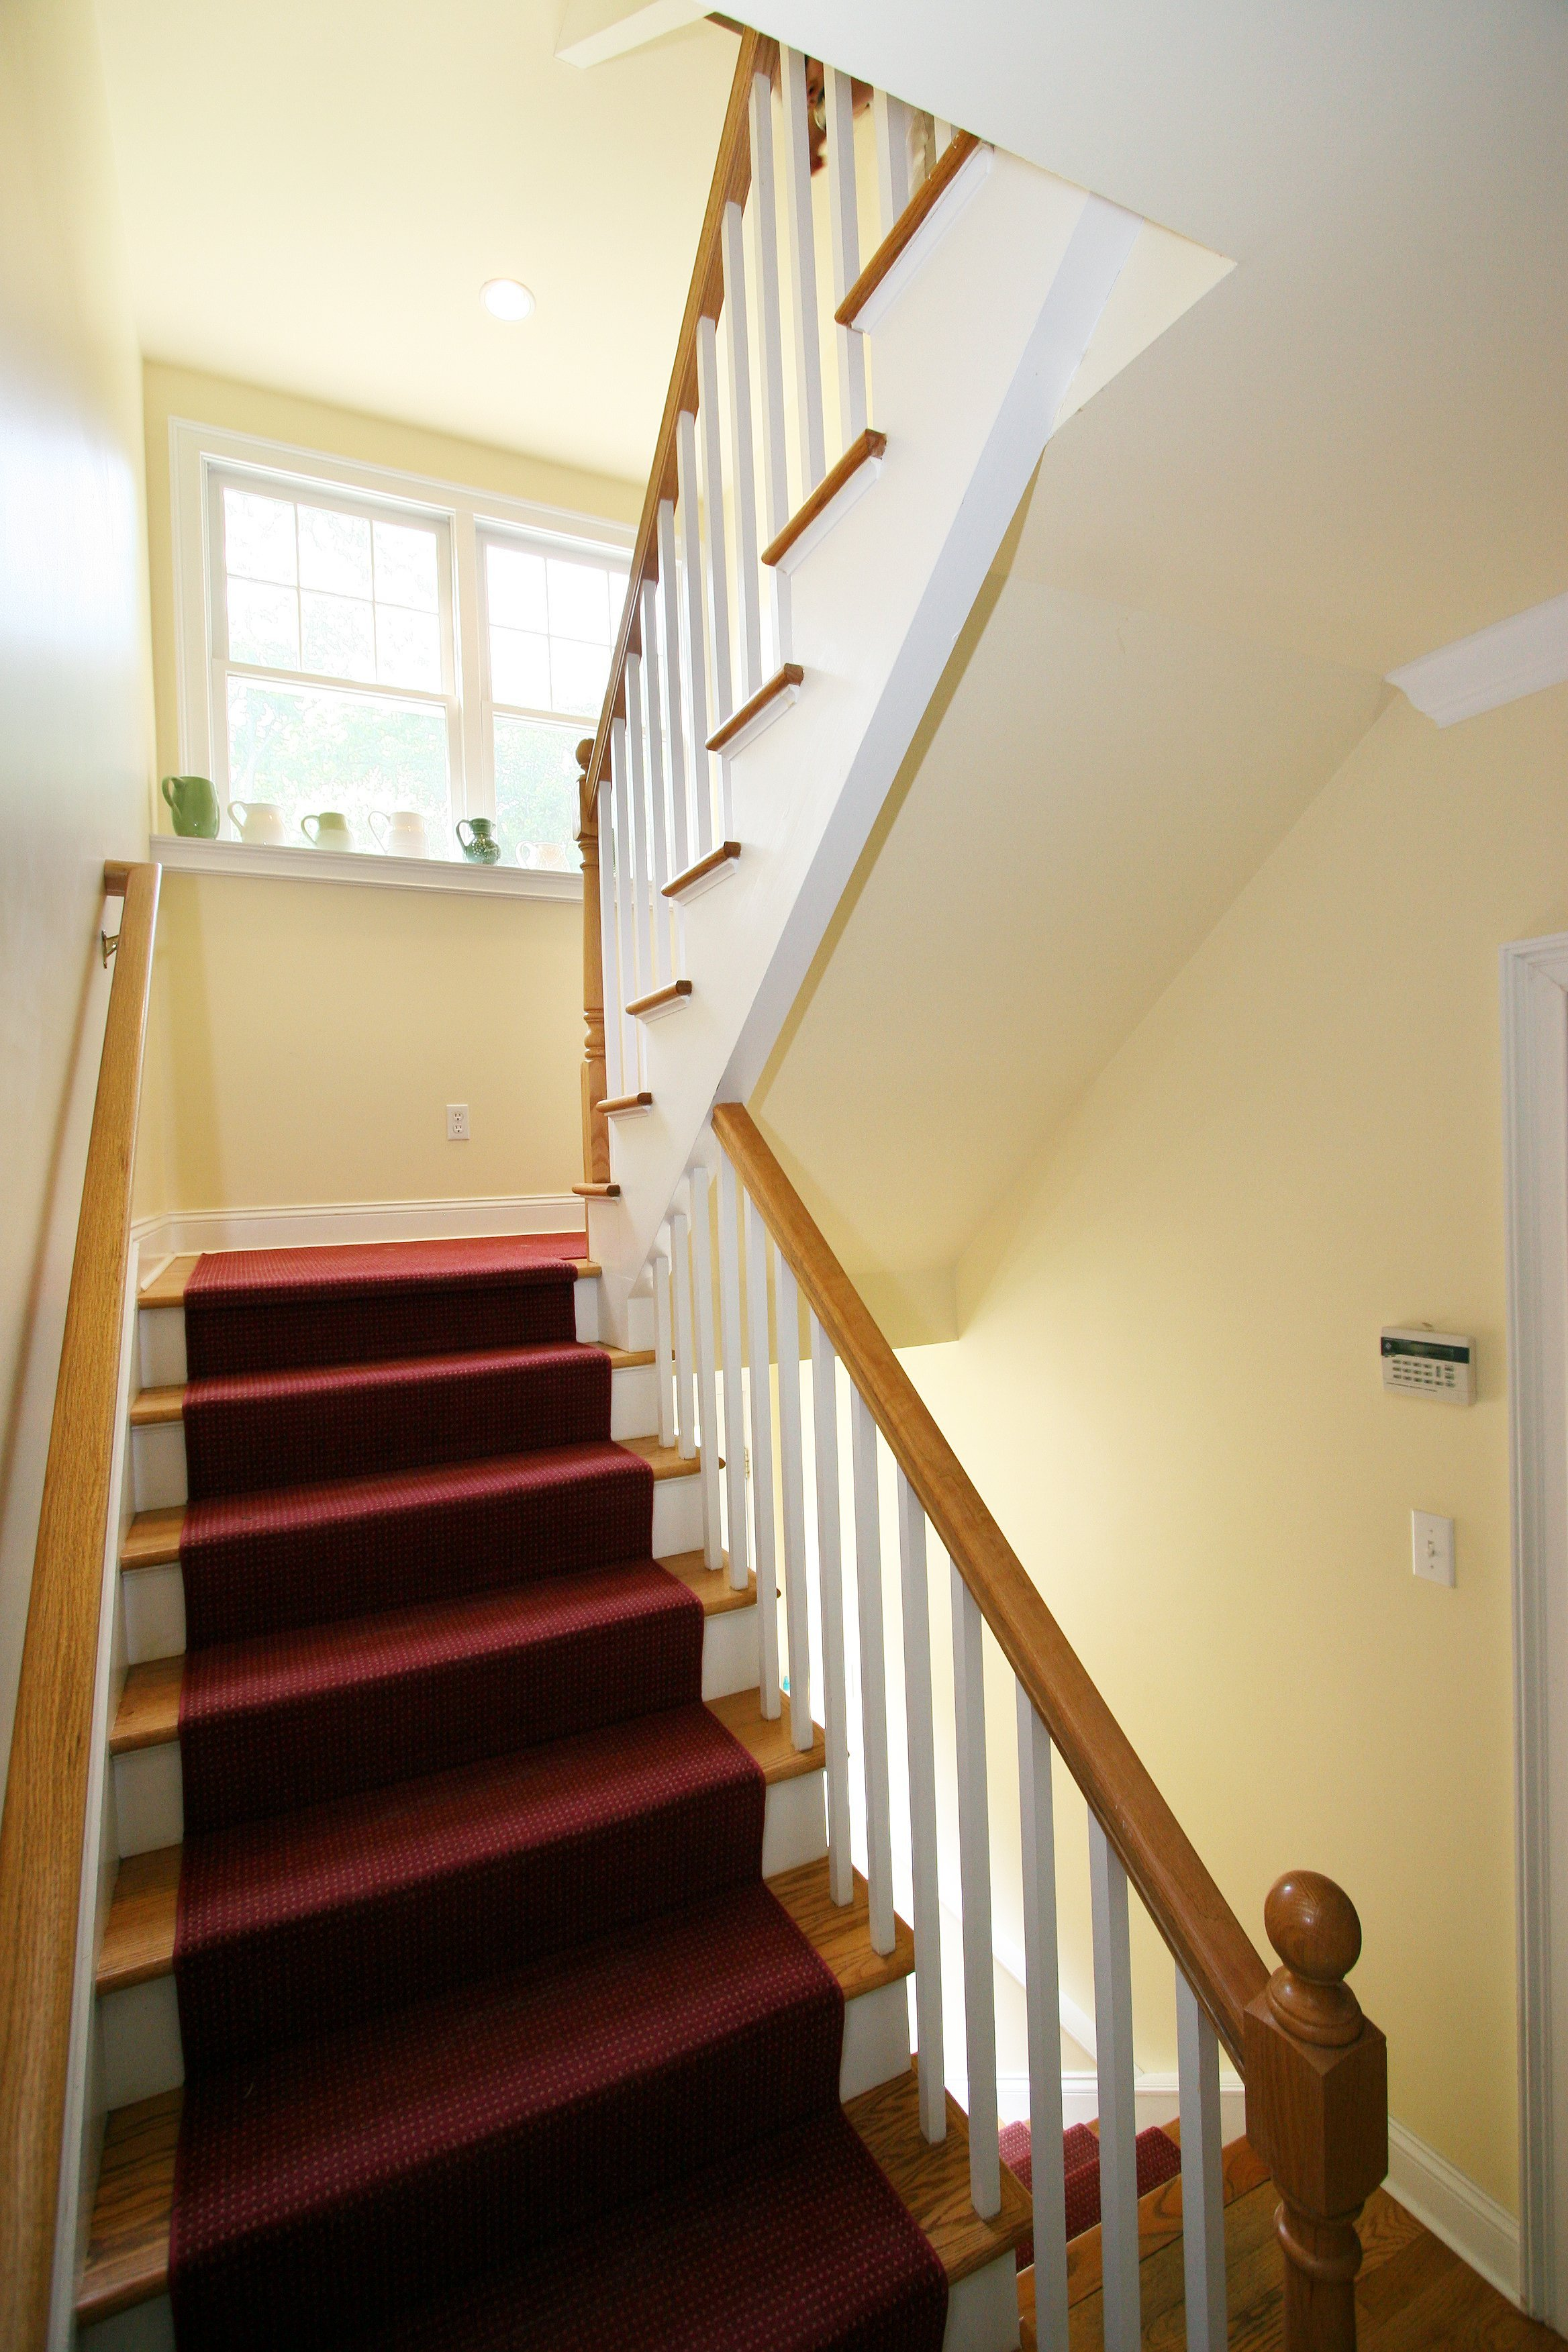 general contractor, stairway renovated by SIP Building Solutions general contractors - Westport, Fairfield, Stamford, Greenwich, Danbury CT